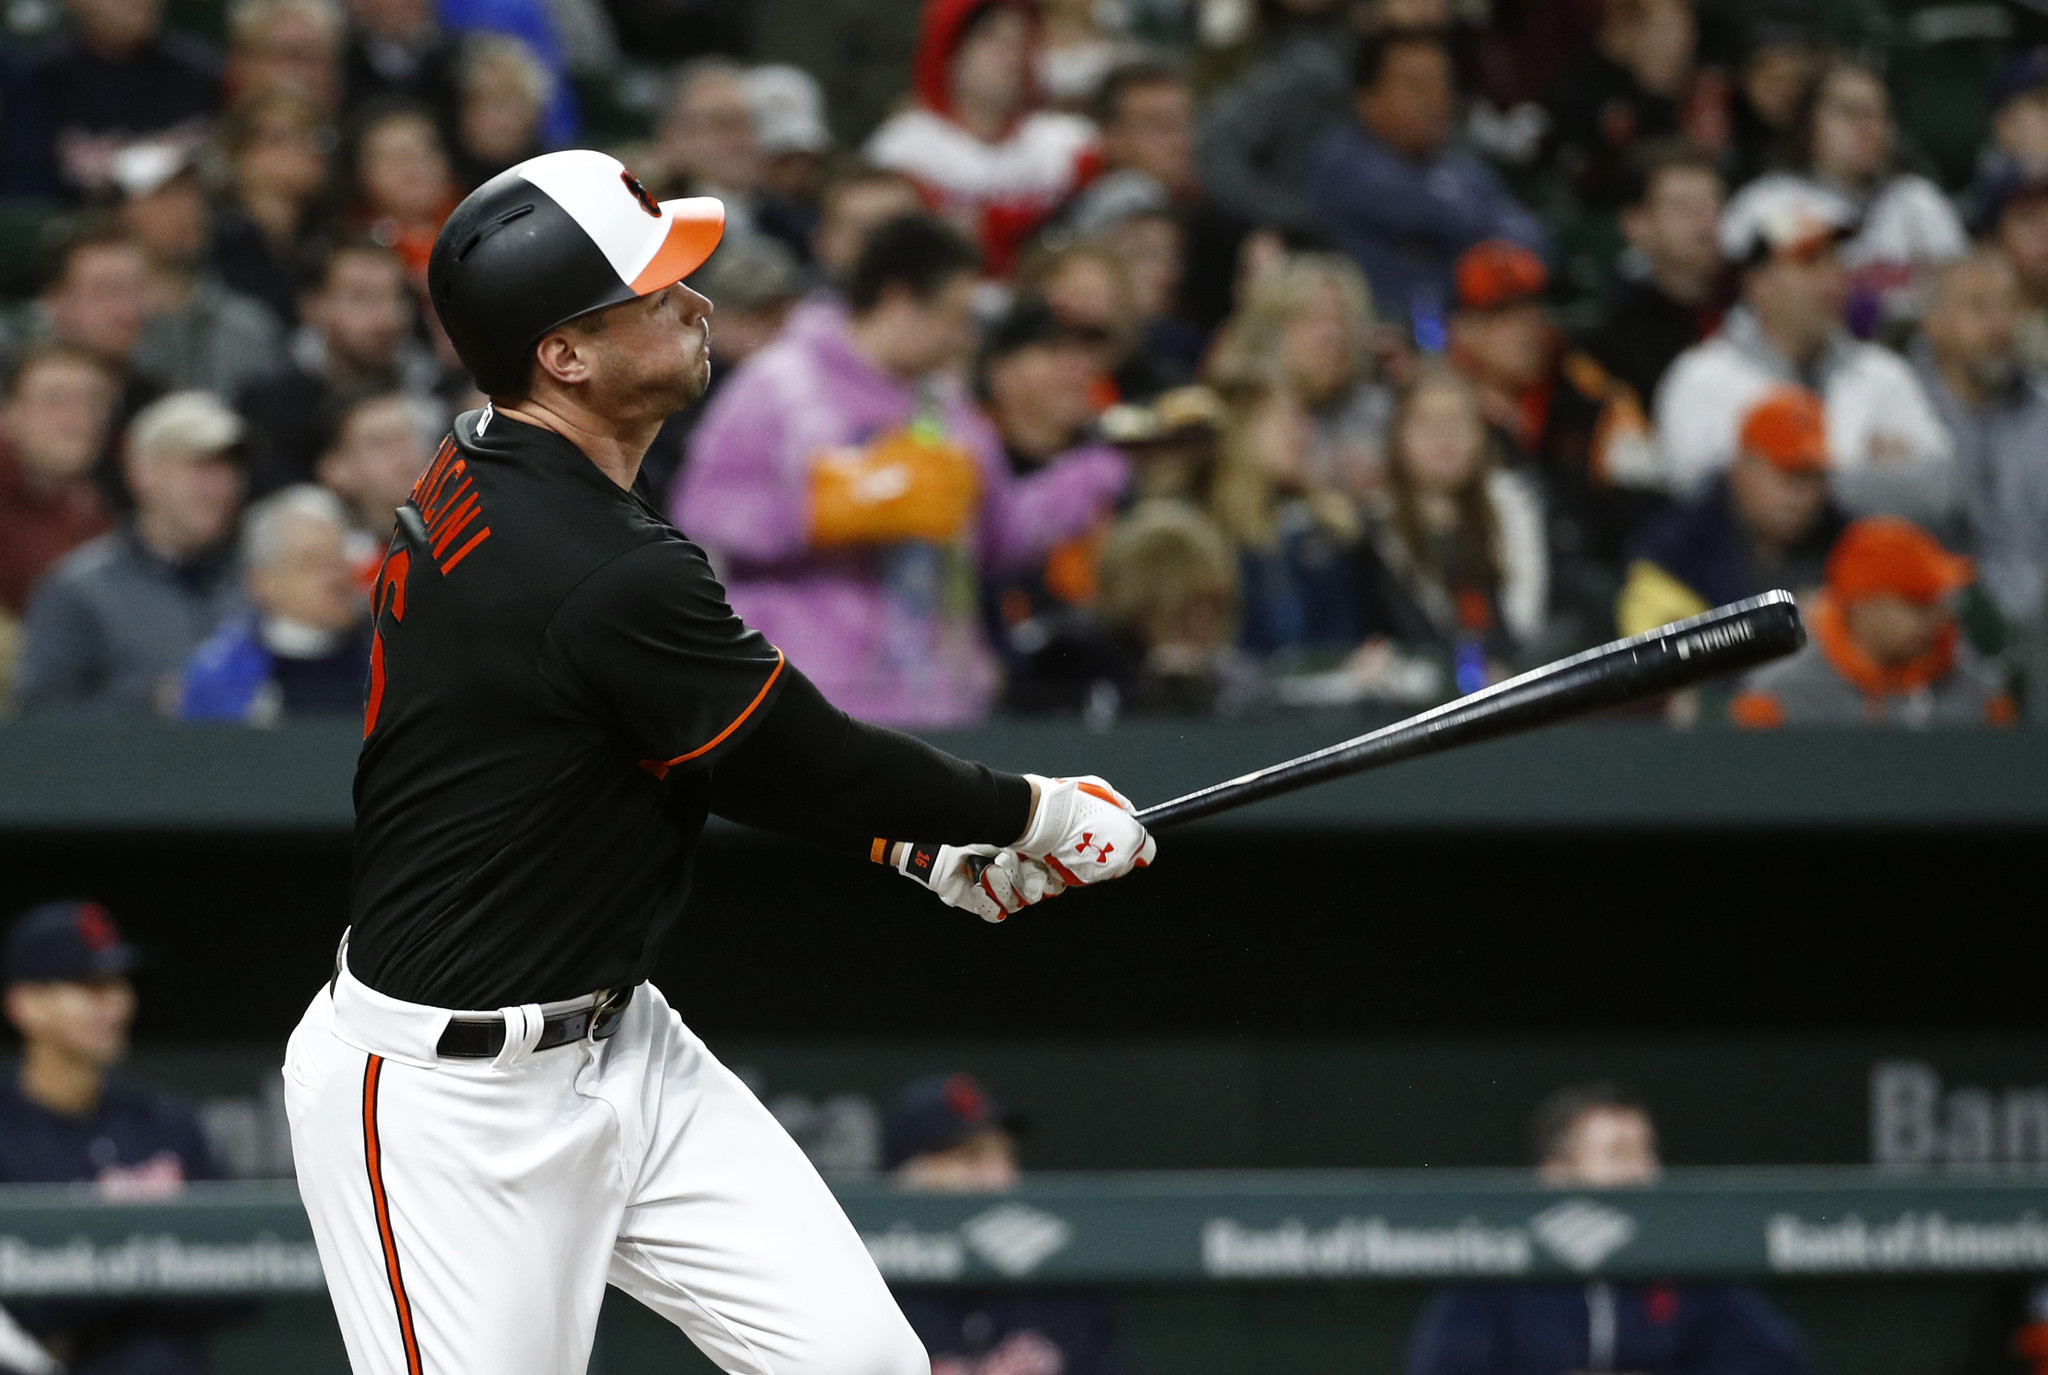 Bal-orioles-rewind-looking-back-at-friday-s-3-1-win-over-the-indians-20180420